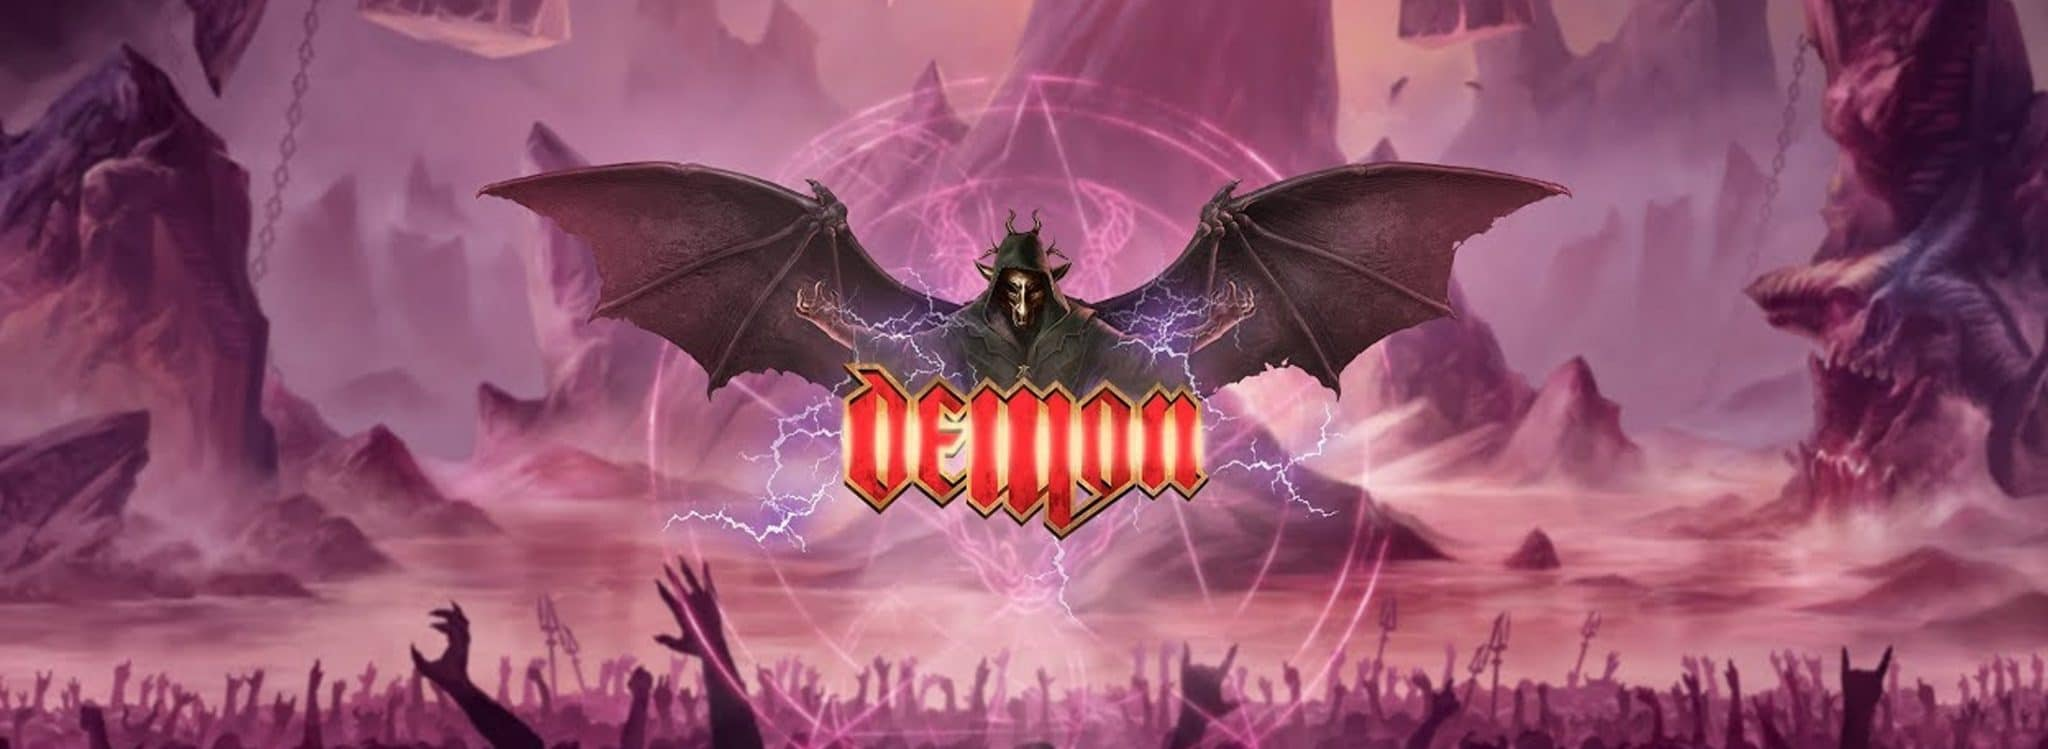 Play'n Go Releases New Video Slot Demon element01 - CasinoTop